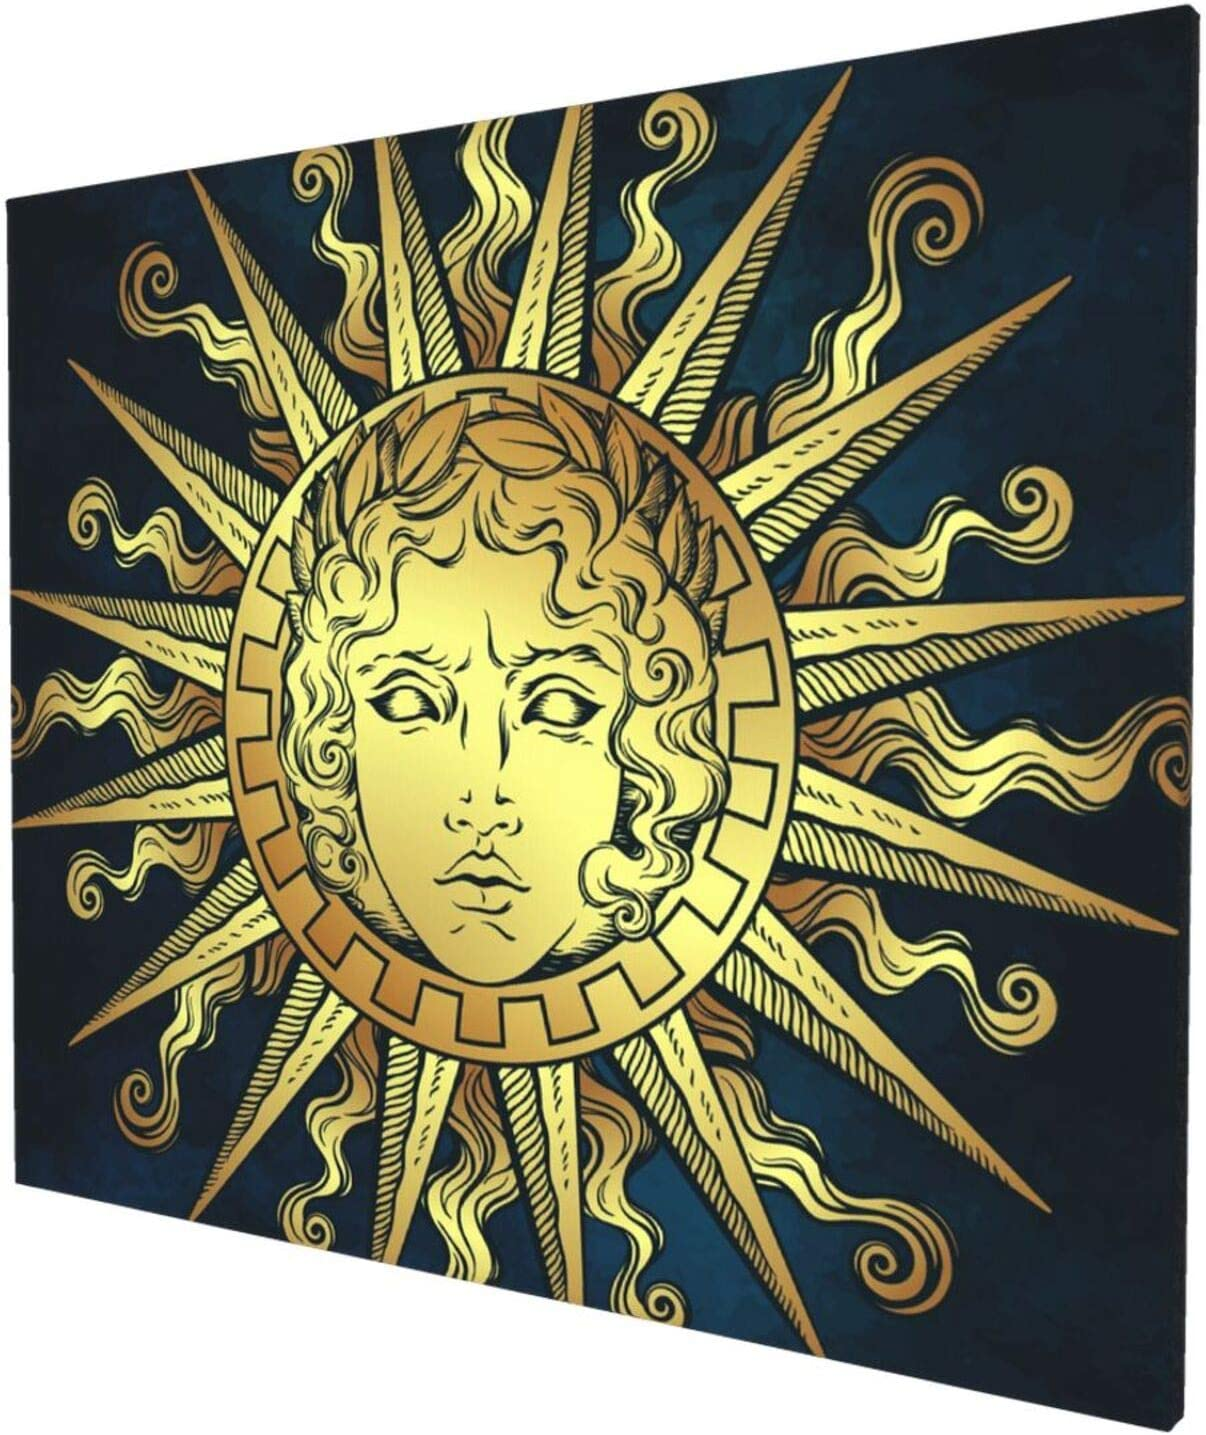 Canvas Wall Art Home Decorations, Sun With Face Of The Greek And Roman God Apollo Wall Decor Artwork for Walls, Wall Decorations for Living Room Bedroom Frameless Wall Hanging Decor Paintings 24x20 Inch